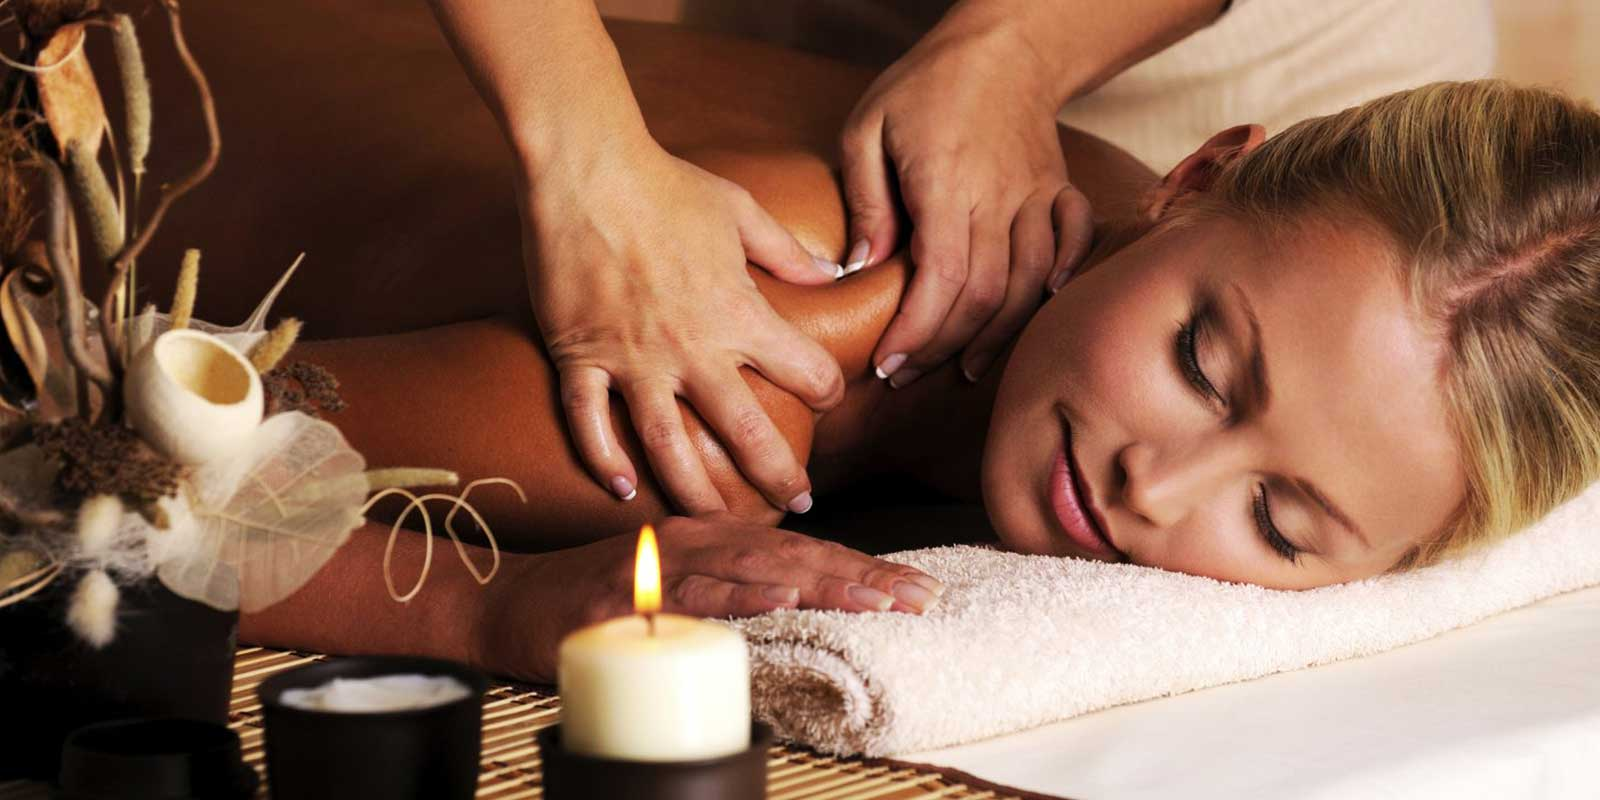 LimeSpa Cochin is one of the best body spa in kerala which